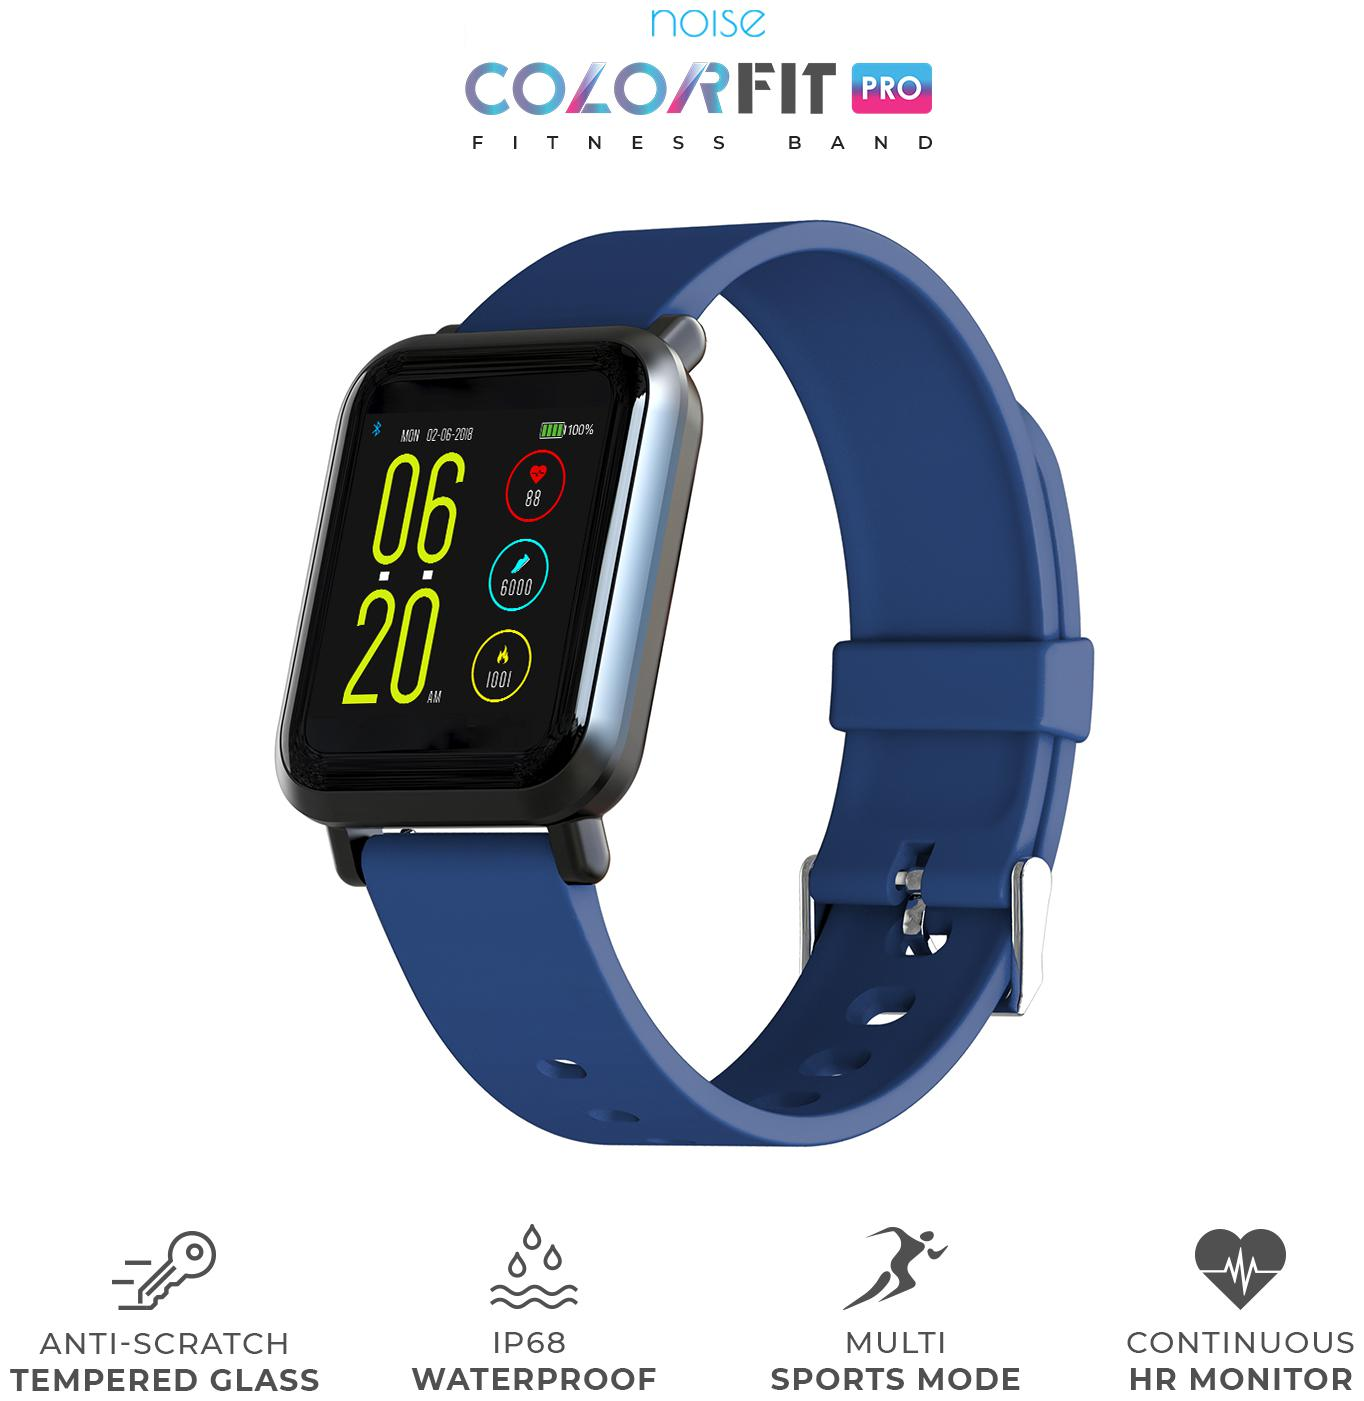 Noise ColorFit Pro Smartwatch - Classic Cool Blue | Bluetooth Smart Band with Detachable Strap | Wide Screen Waterproof | Sports and Activity Tracker | Camera and Music Control Features